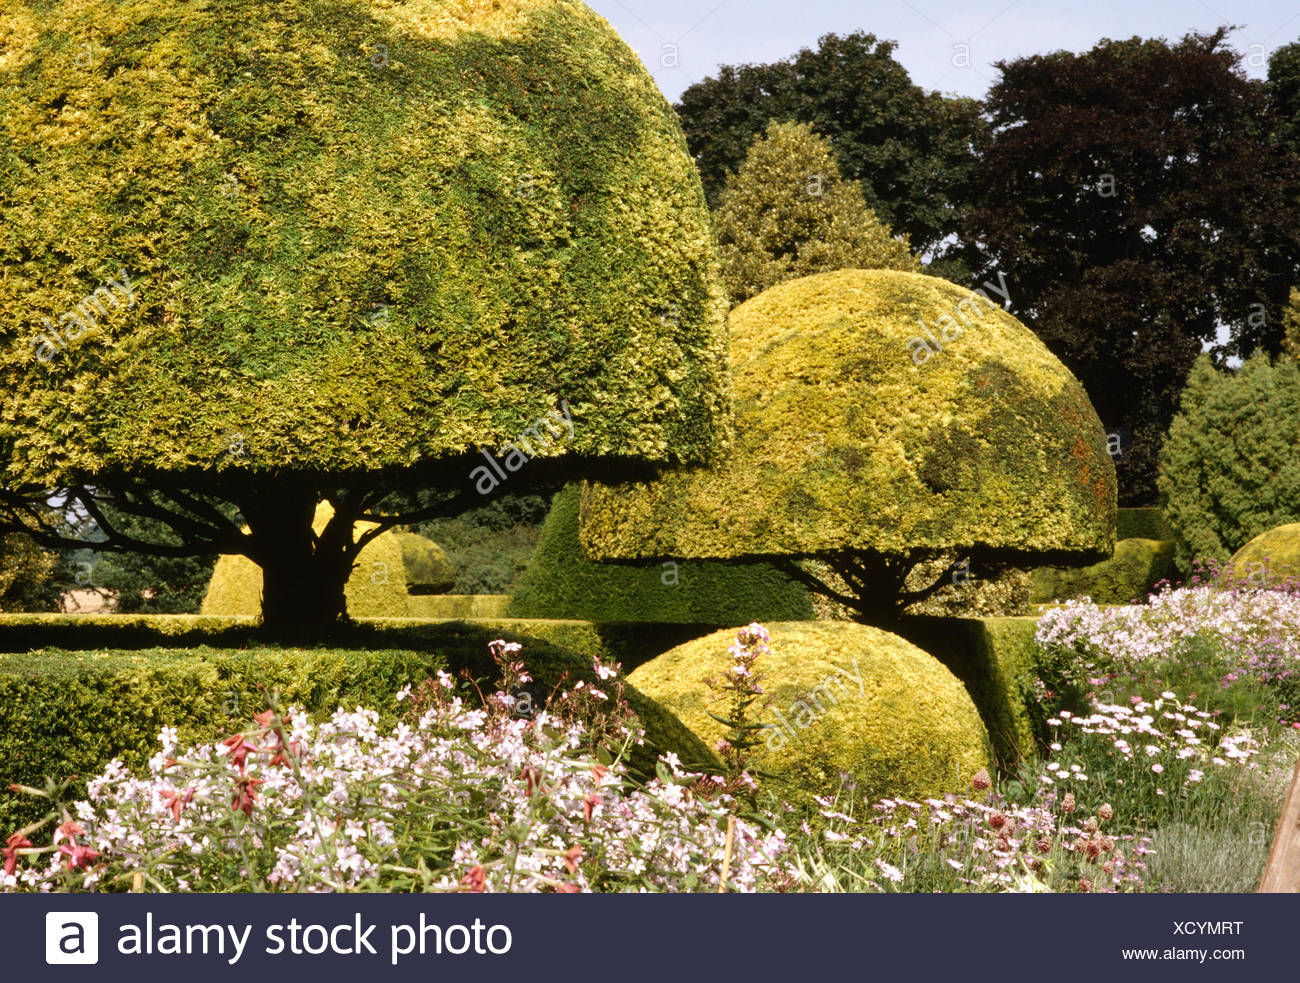 Yellow conifers clipped into a half circle in large country garden - Stock Image